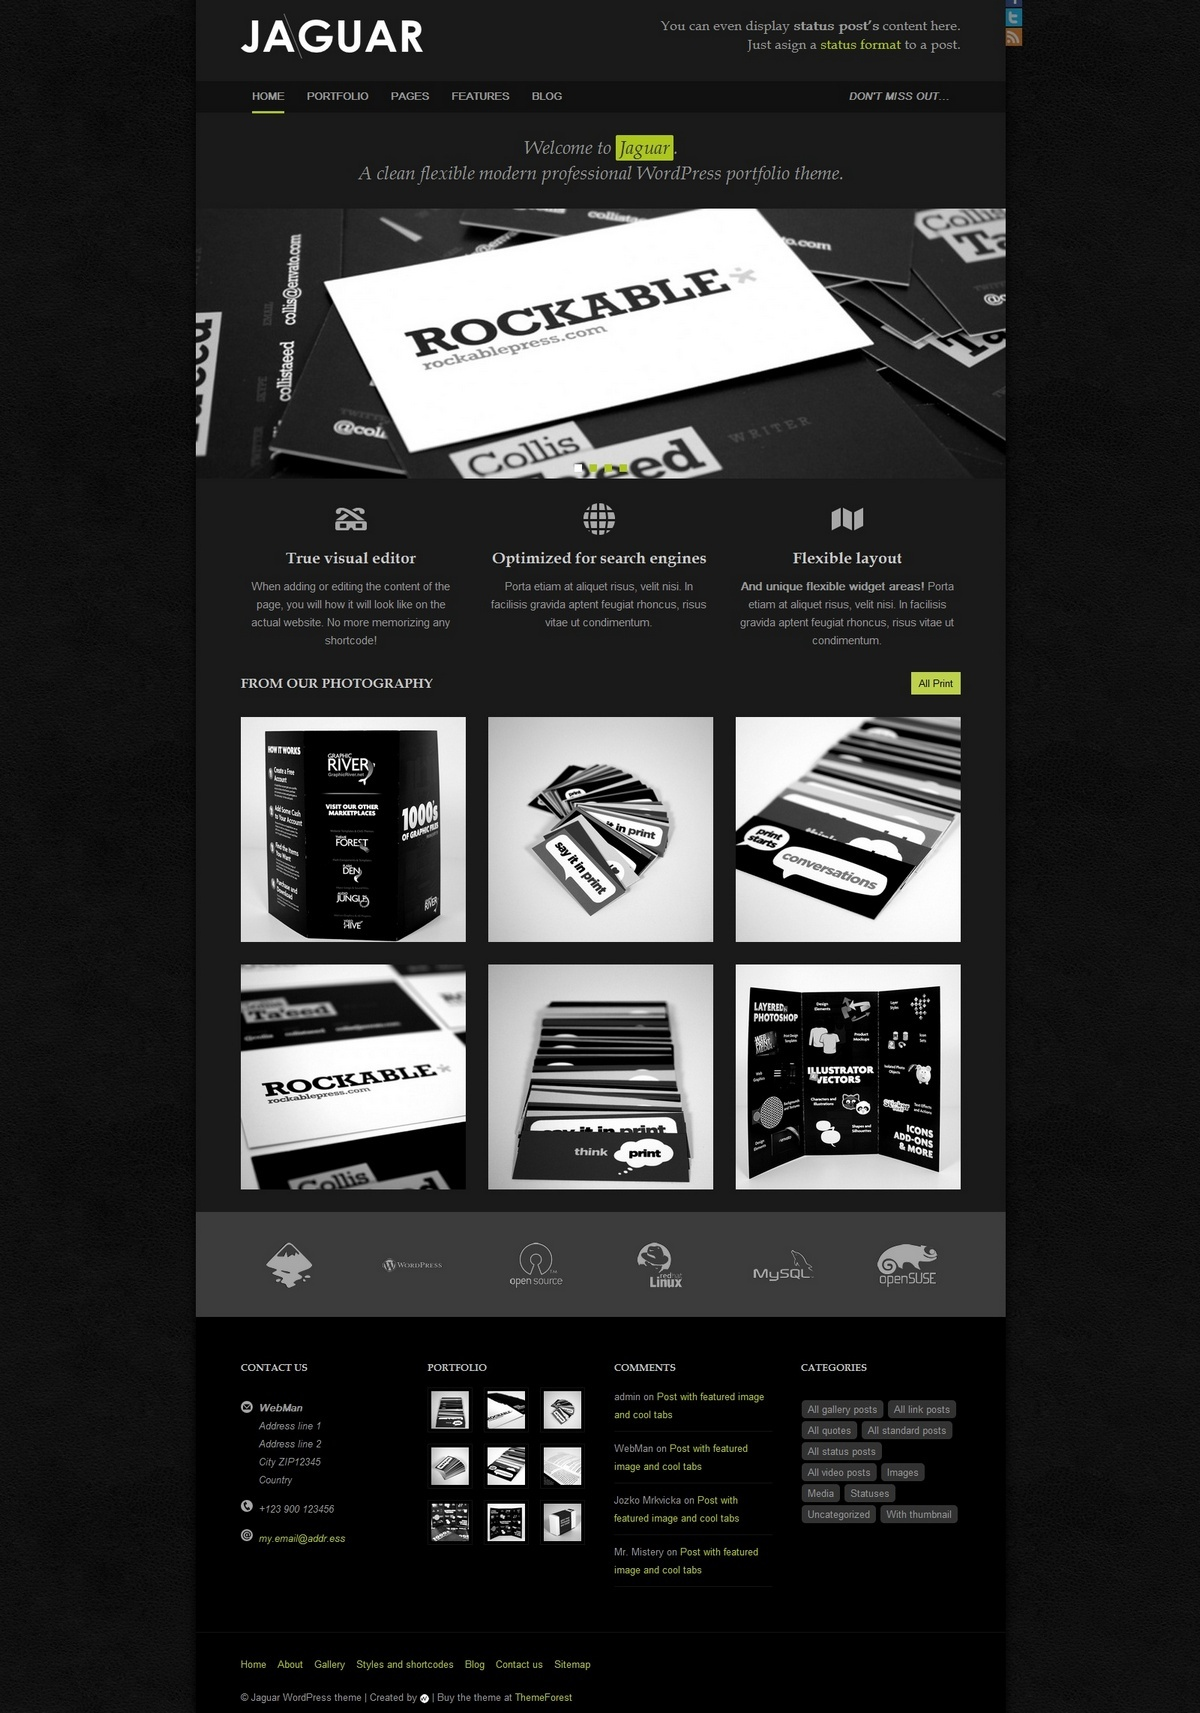 Jaguar - Professional Portfolio Theme - Jaguar Blackie color skin preview